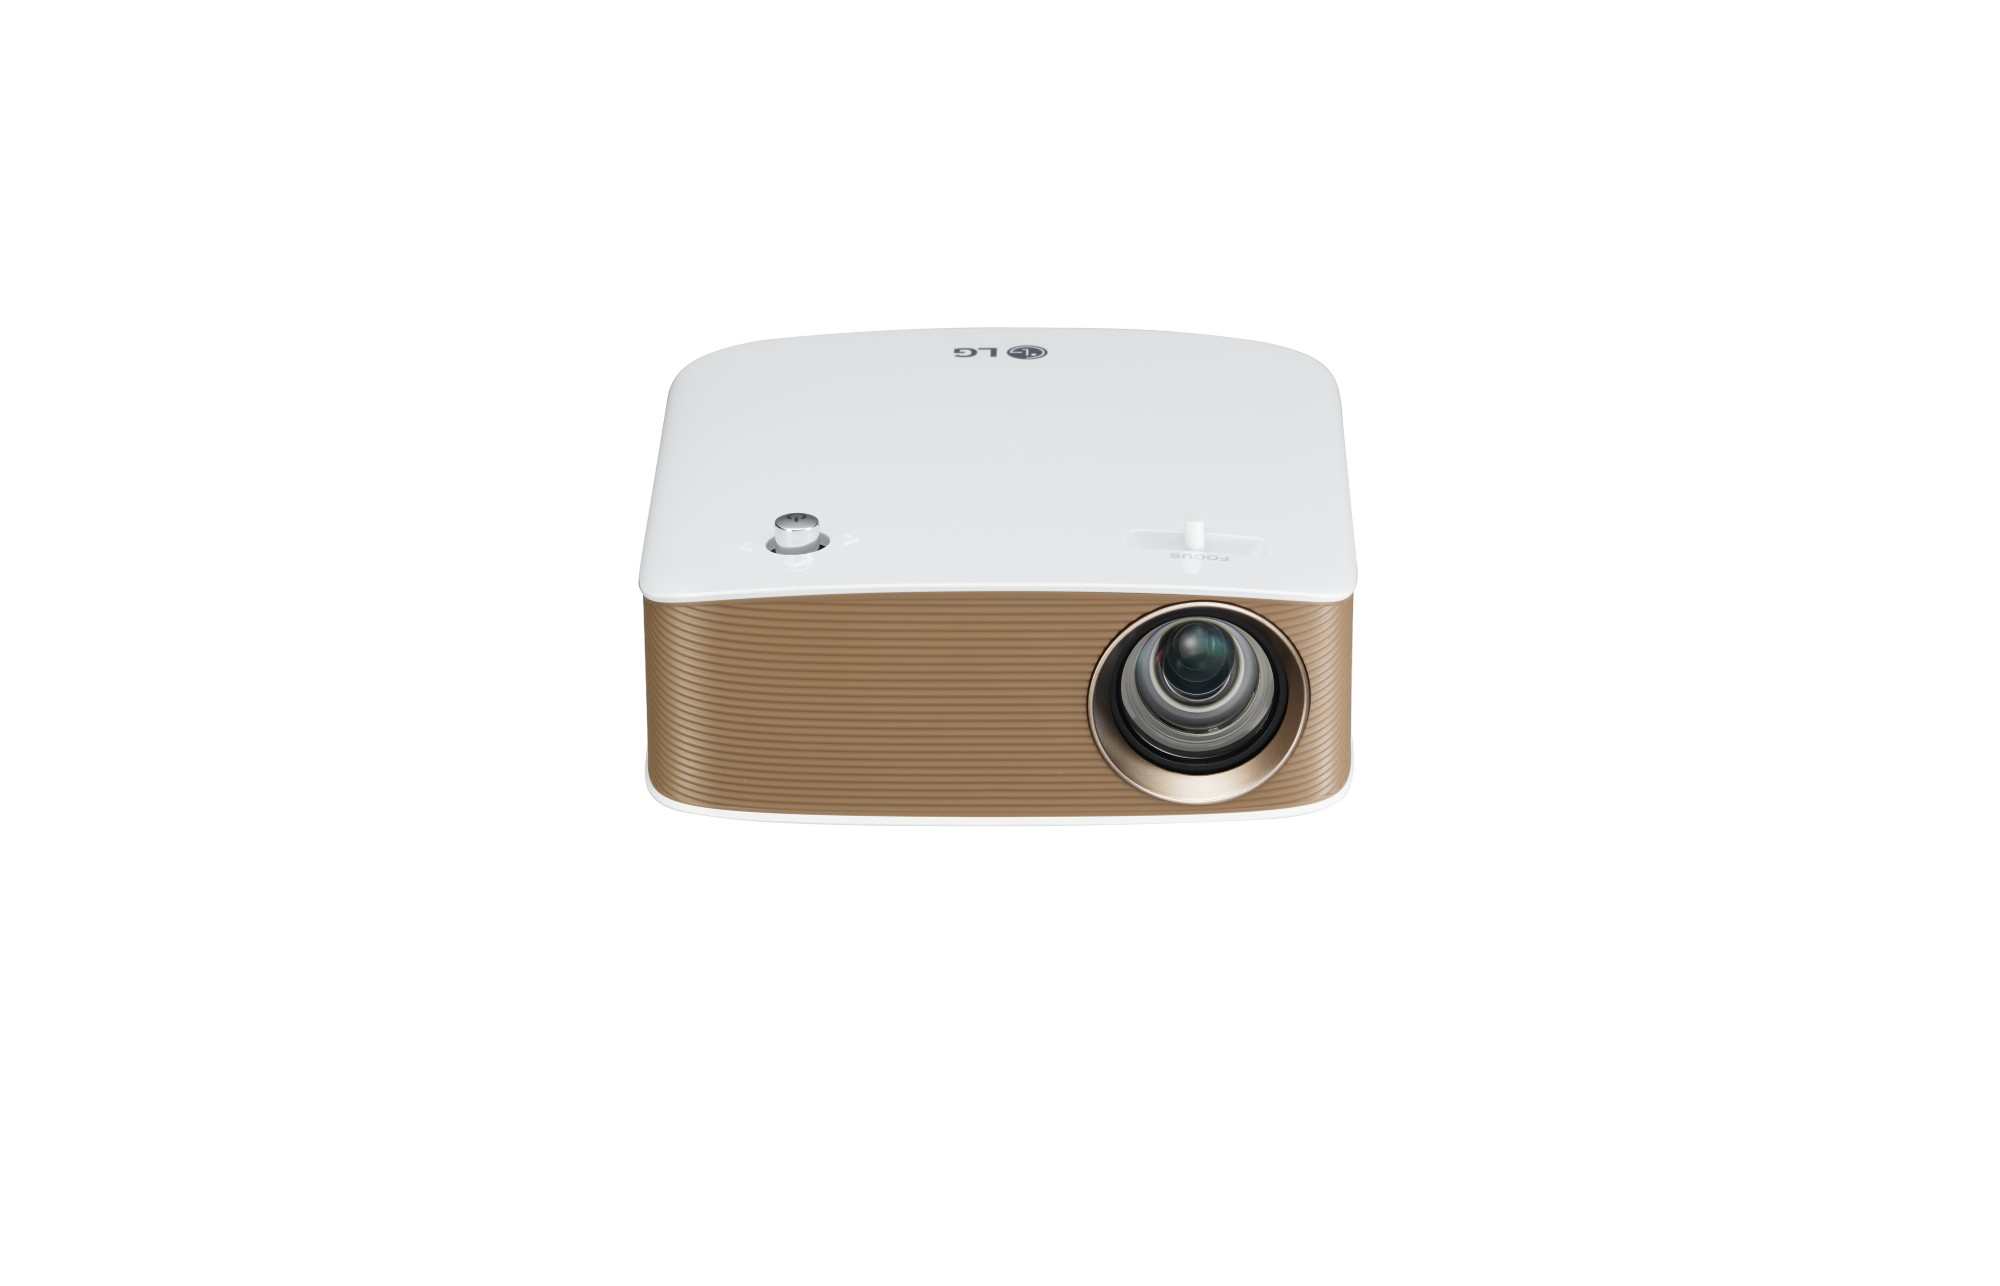 LG PH150G PORTABLE PROJECTOR 130ANSI LUMENS DLP 720P (1280X720) GOLD, WHITE DATA